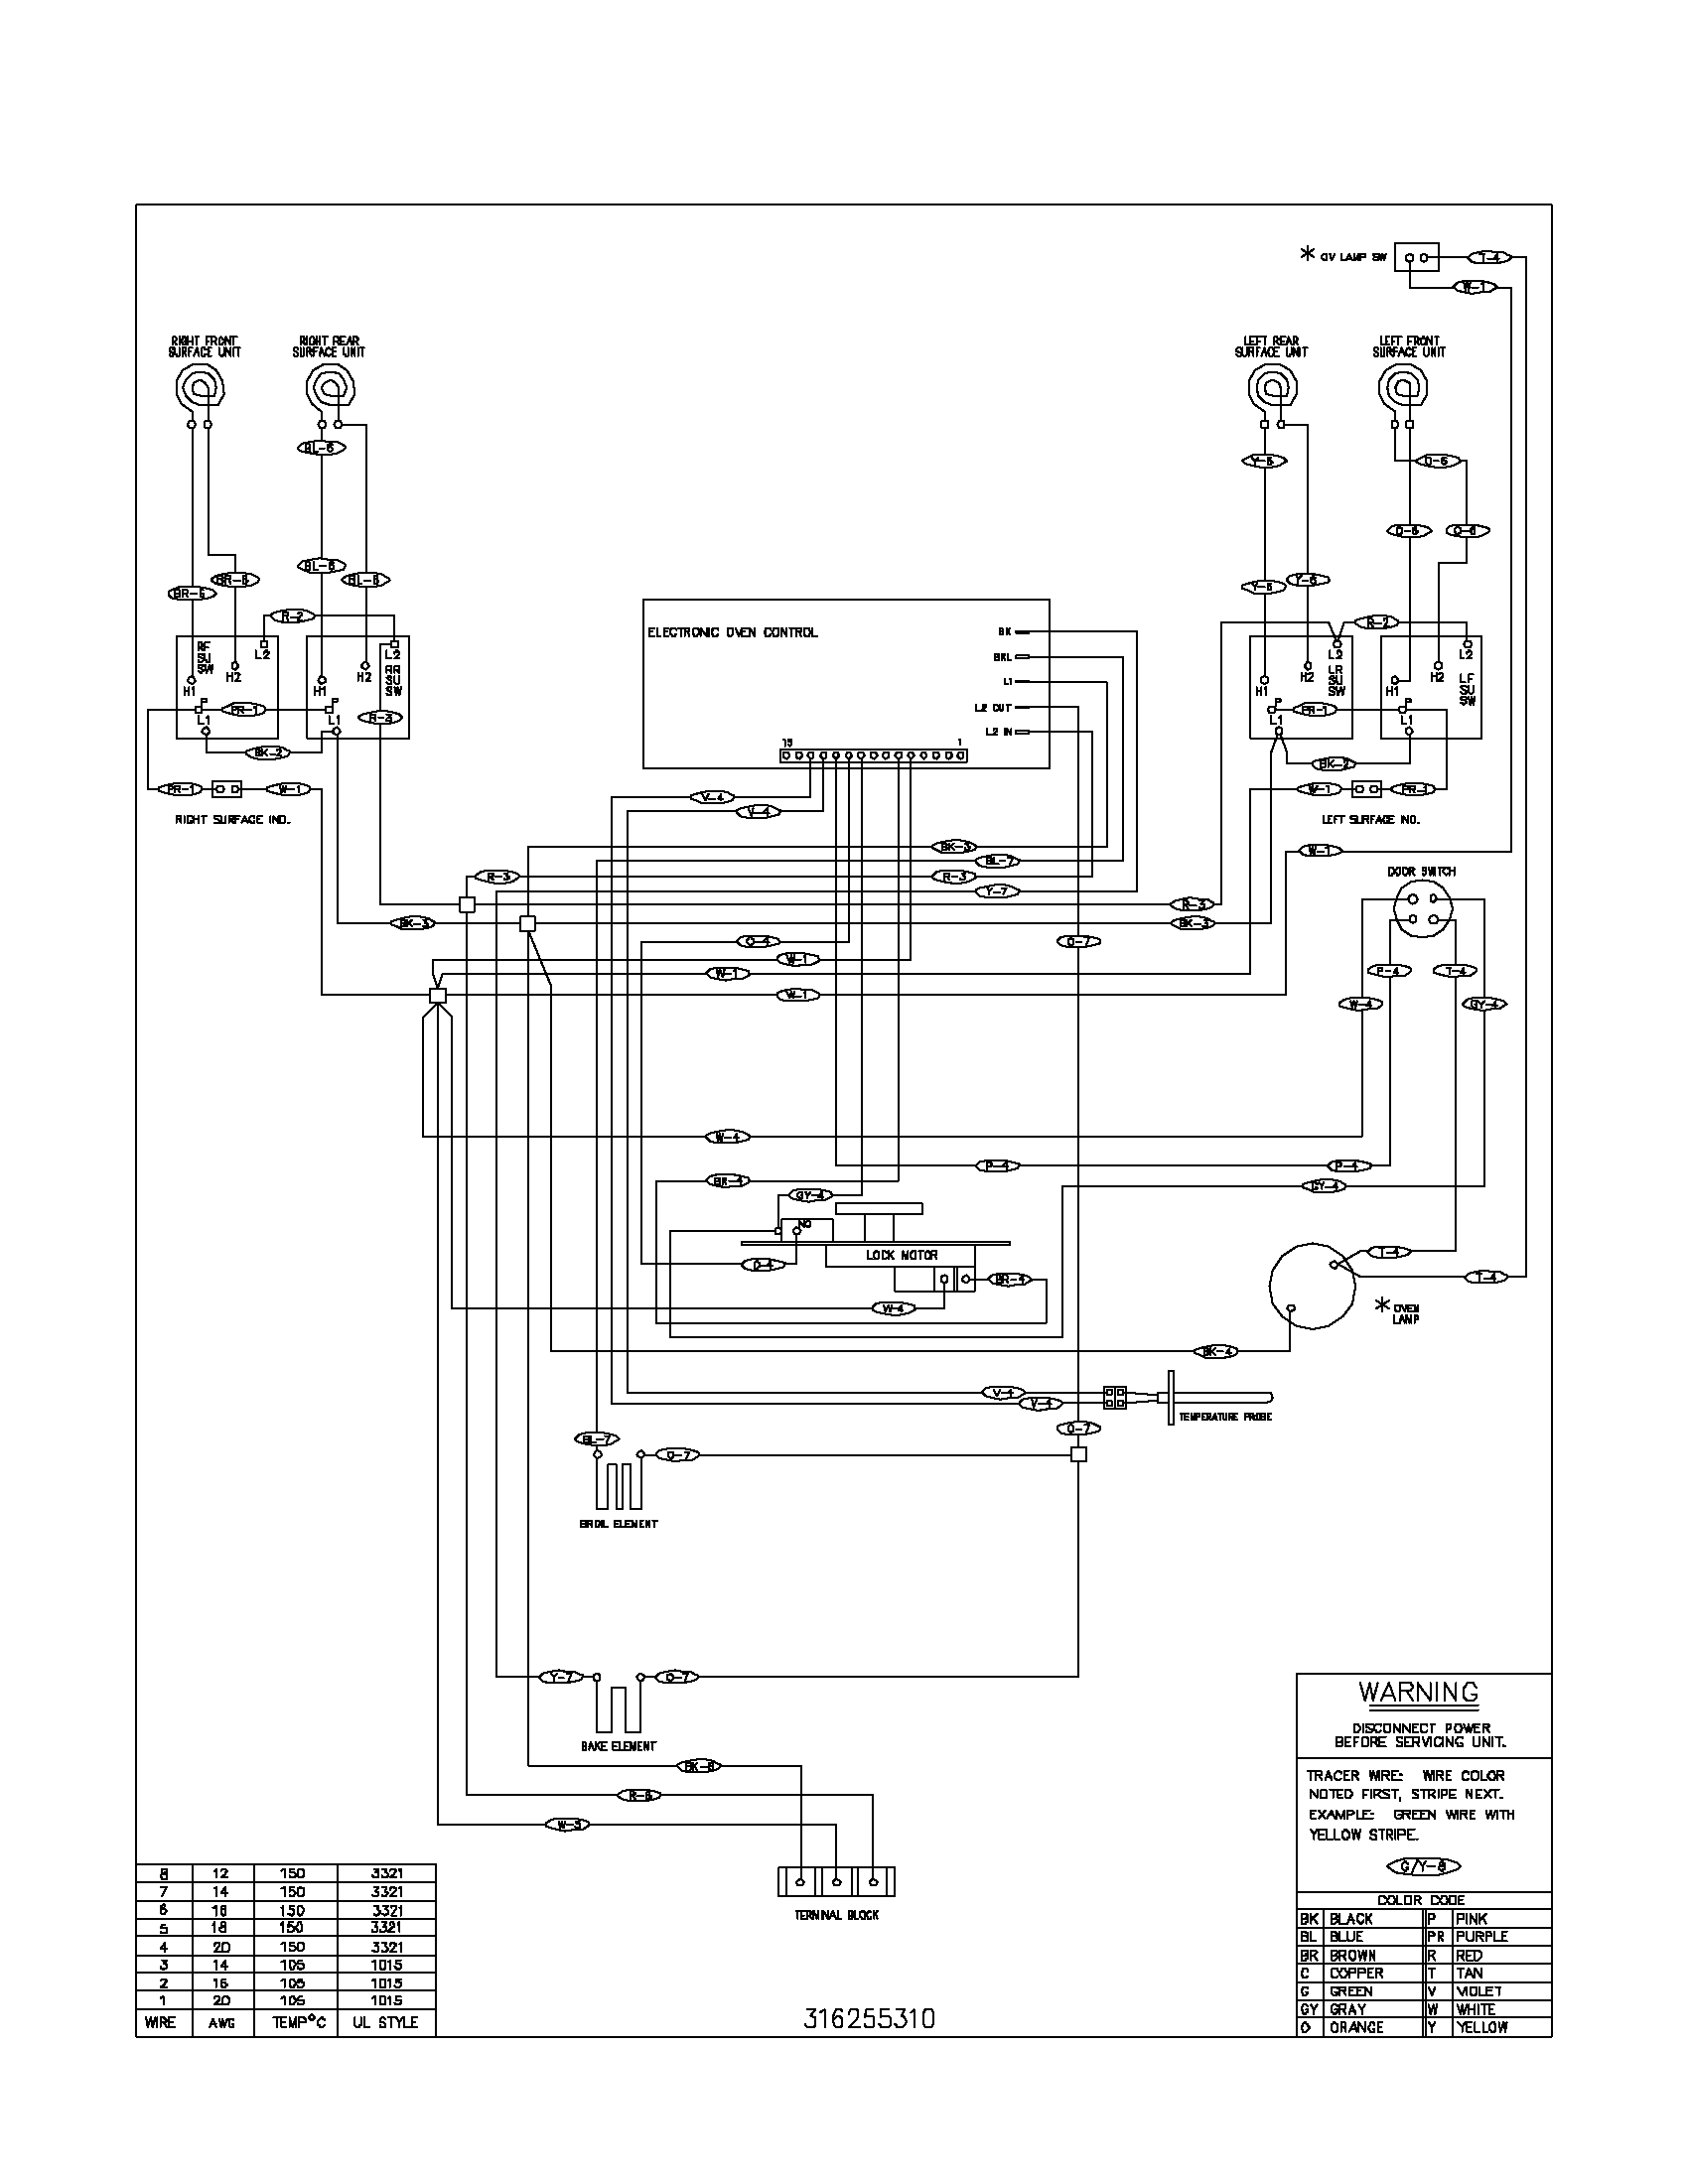 wiring diagram for furnace motor wiring discover your wiring old electric stove wiring forced air furnace diagram